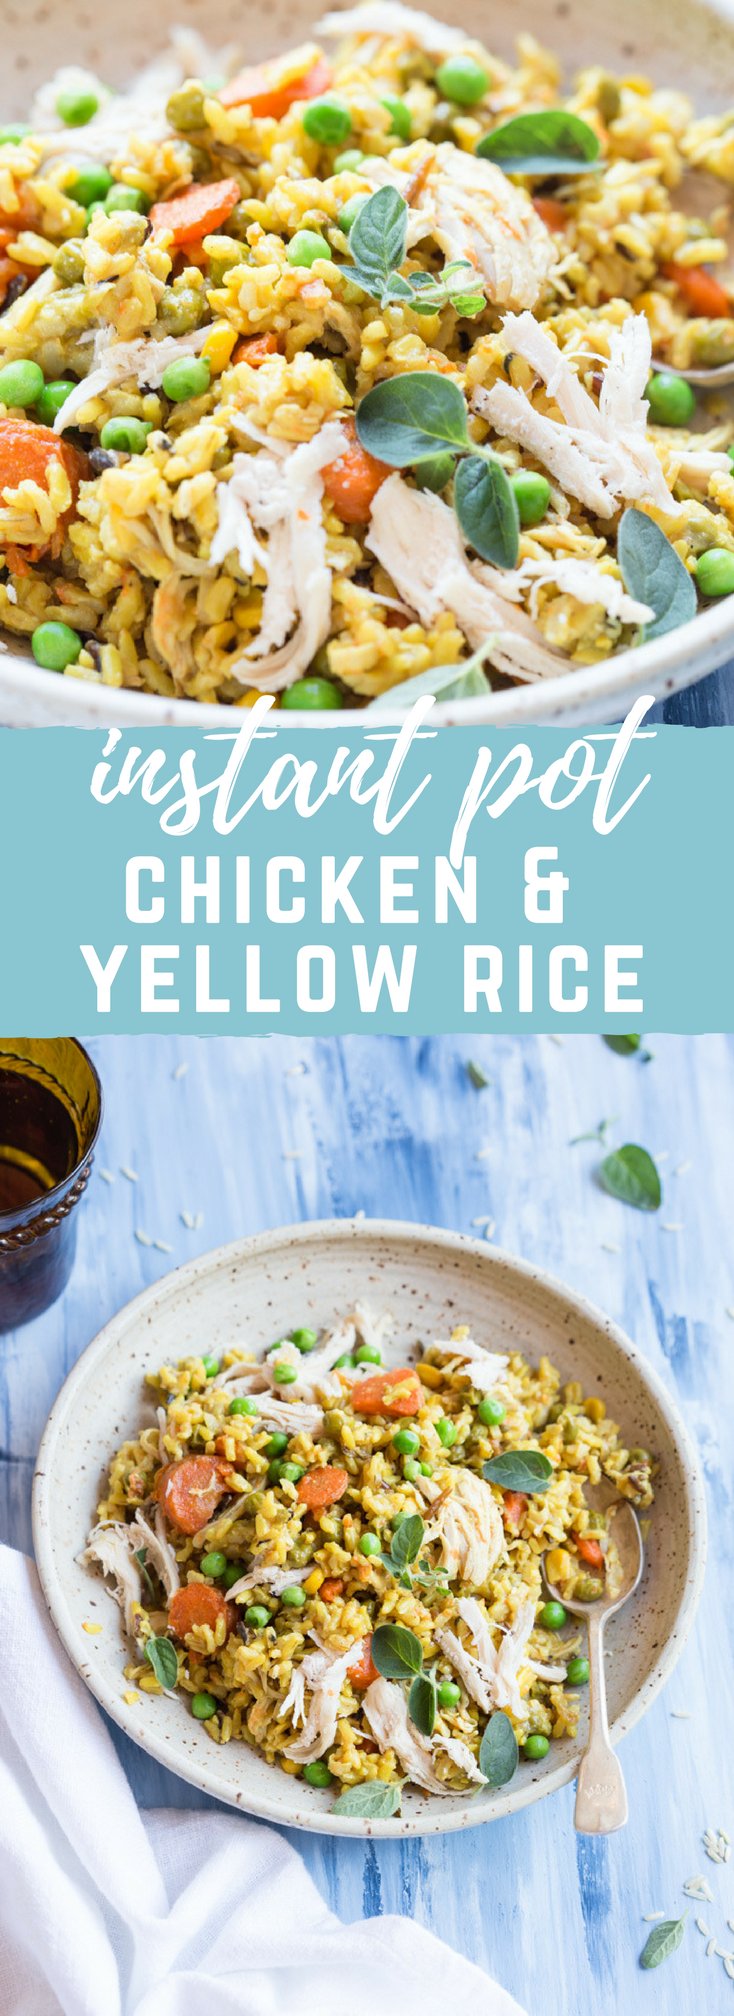 Instant Pot Chicken and Yellow Rice | a simple gluten free weeknight ...